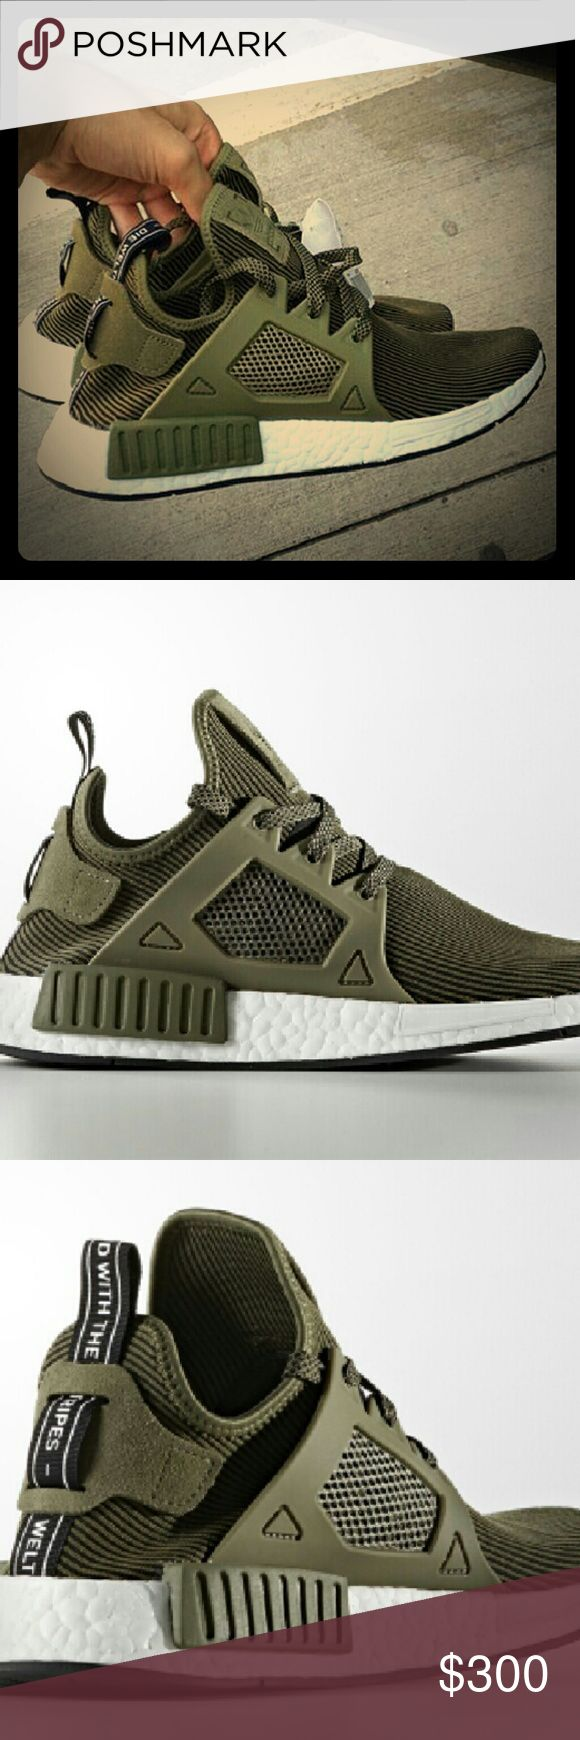 Adidas NMD XR1 Olive Brand new adidas originals NMD XR1. Rare sneakers. Adidas Shoes Sneakers